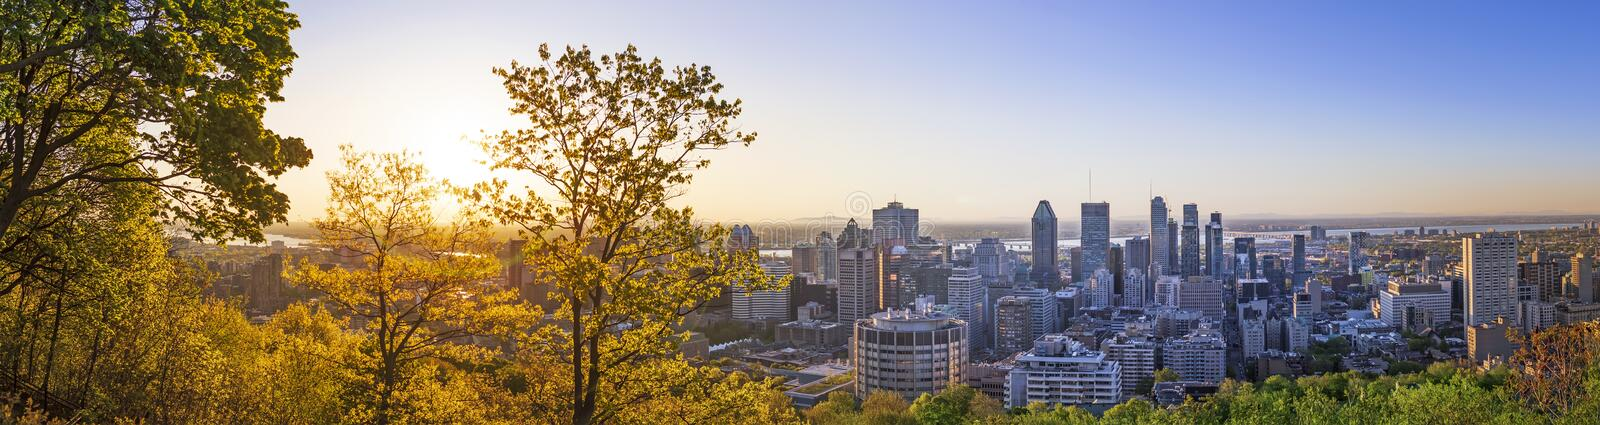 Amazing view of Montreal city at sunrise with colorful blue architecture, green and yellow landscape. Beautiful sky and sun light royalty free stock photos